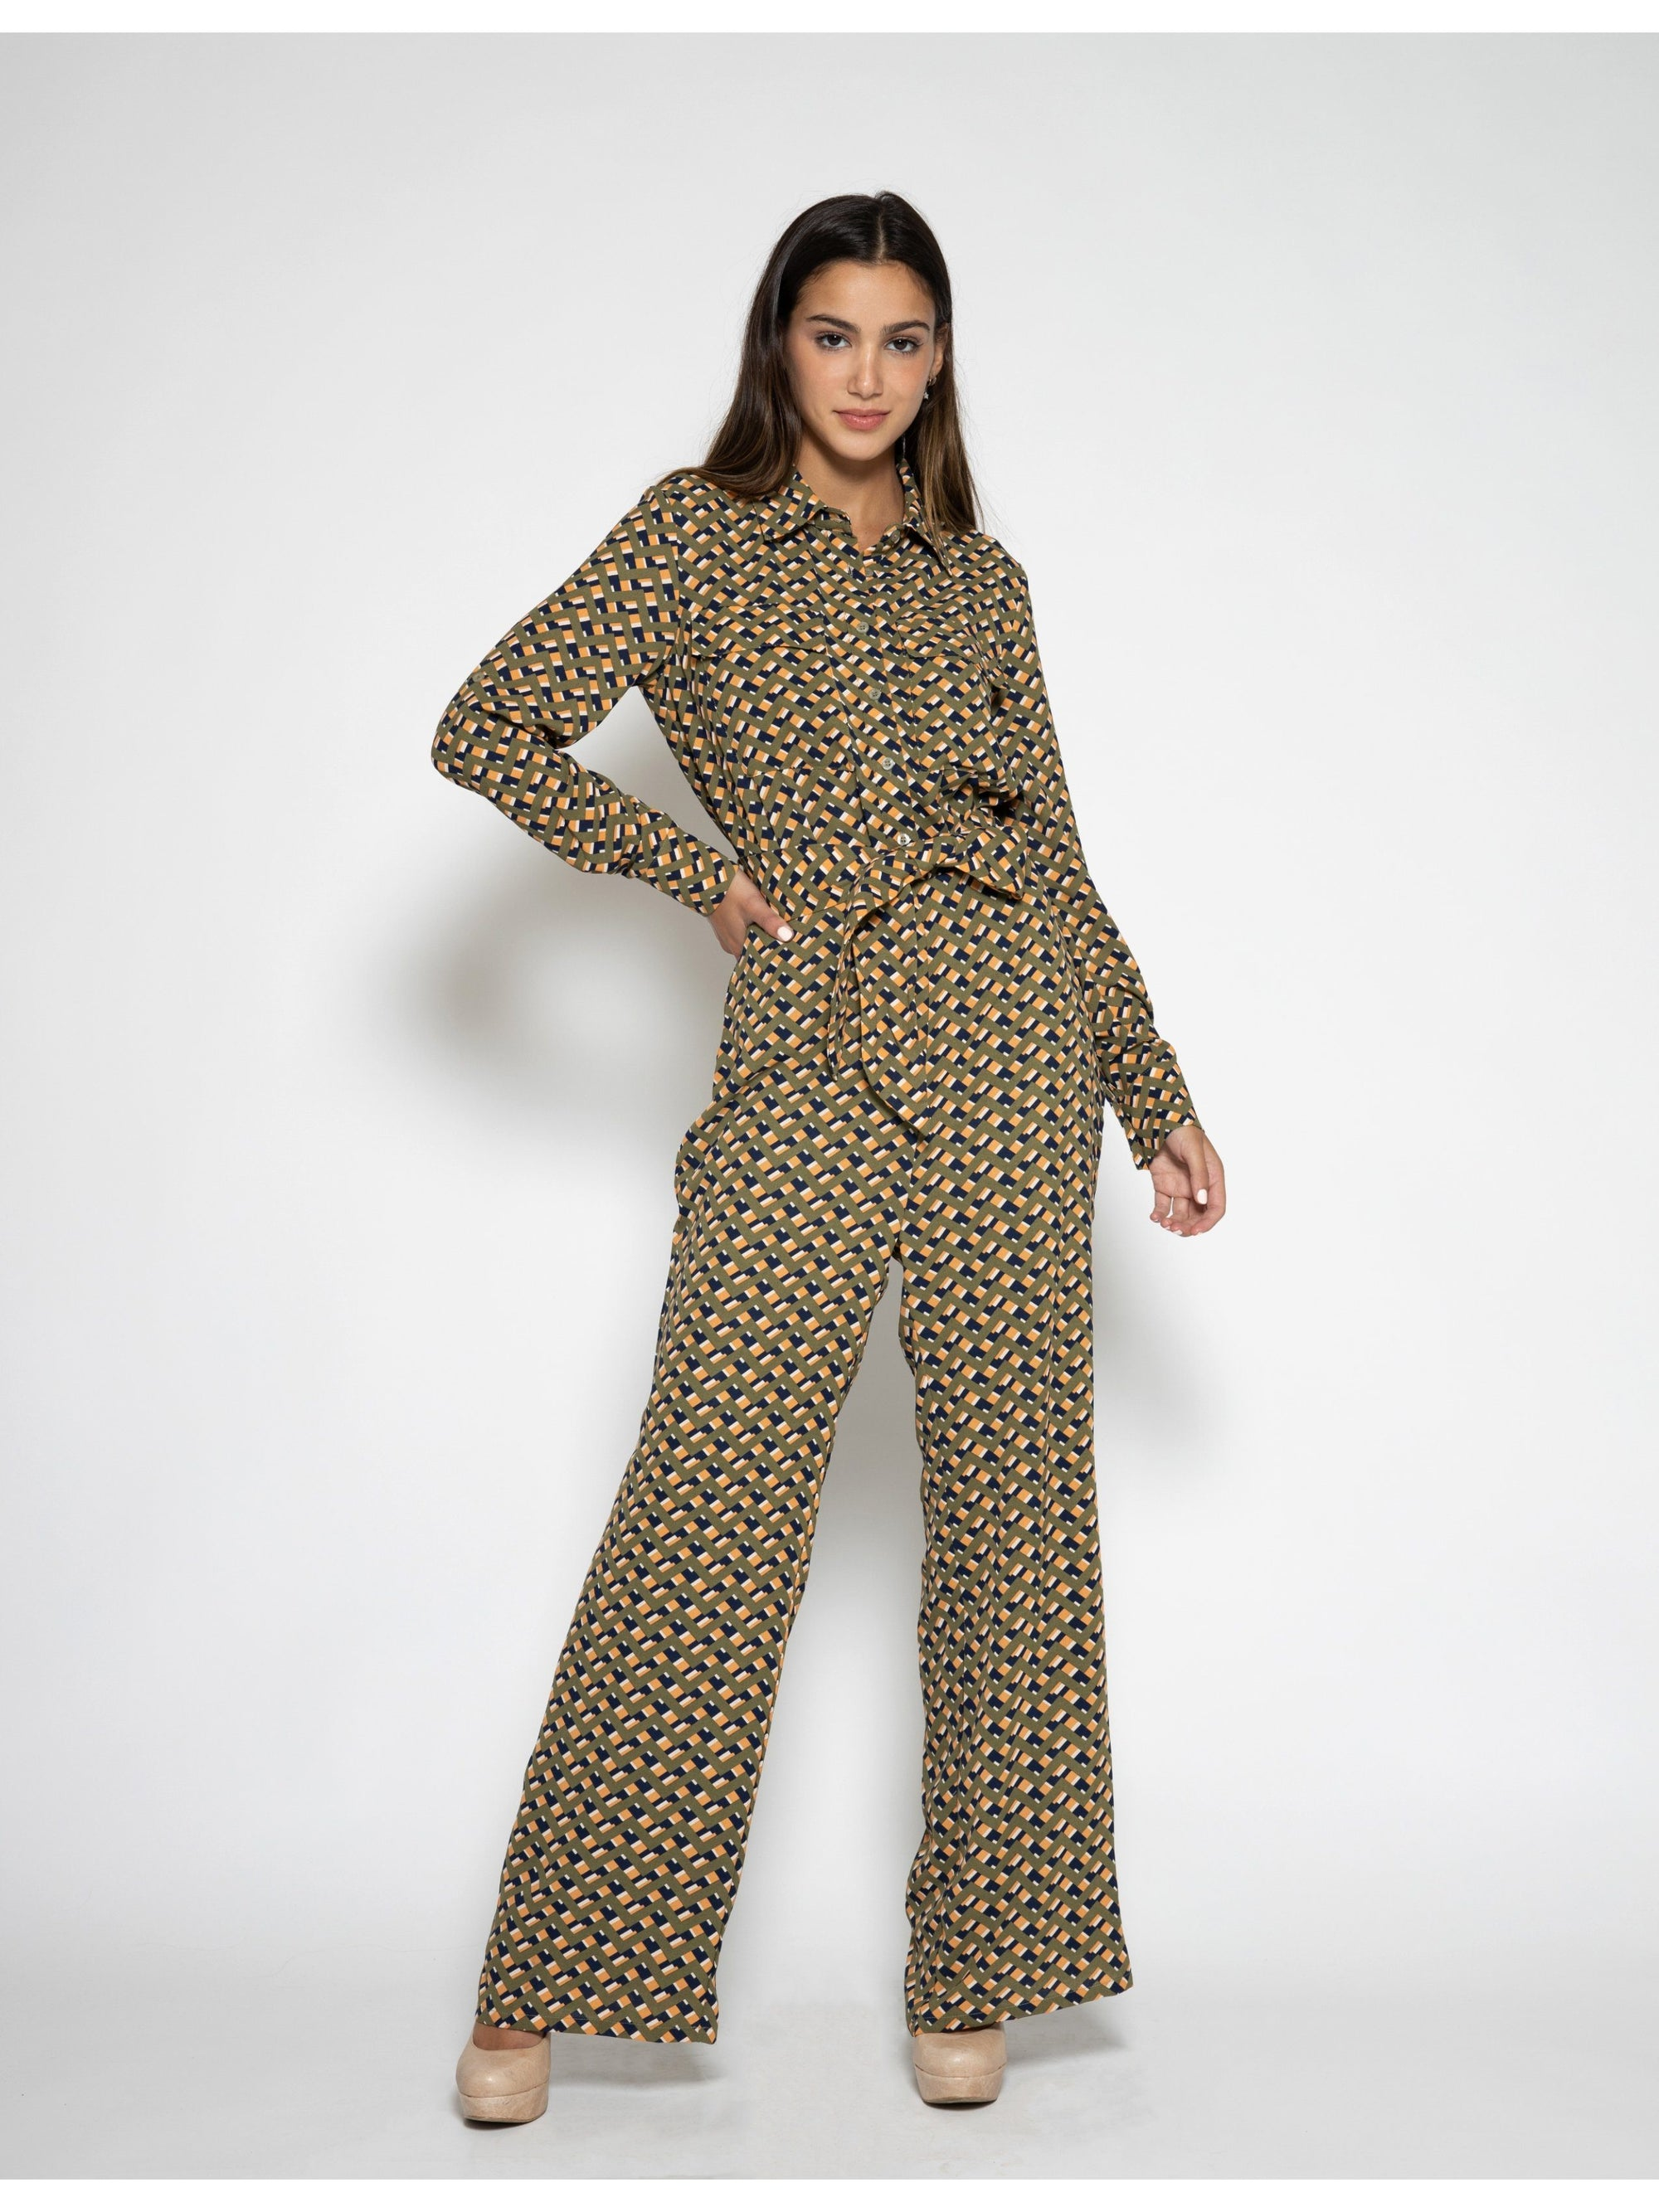 Button-Up and Belted Jumpsuit JUMPSUIT Gracia Fashion OLIVE S